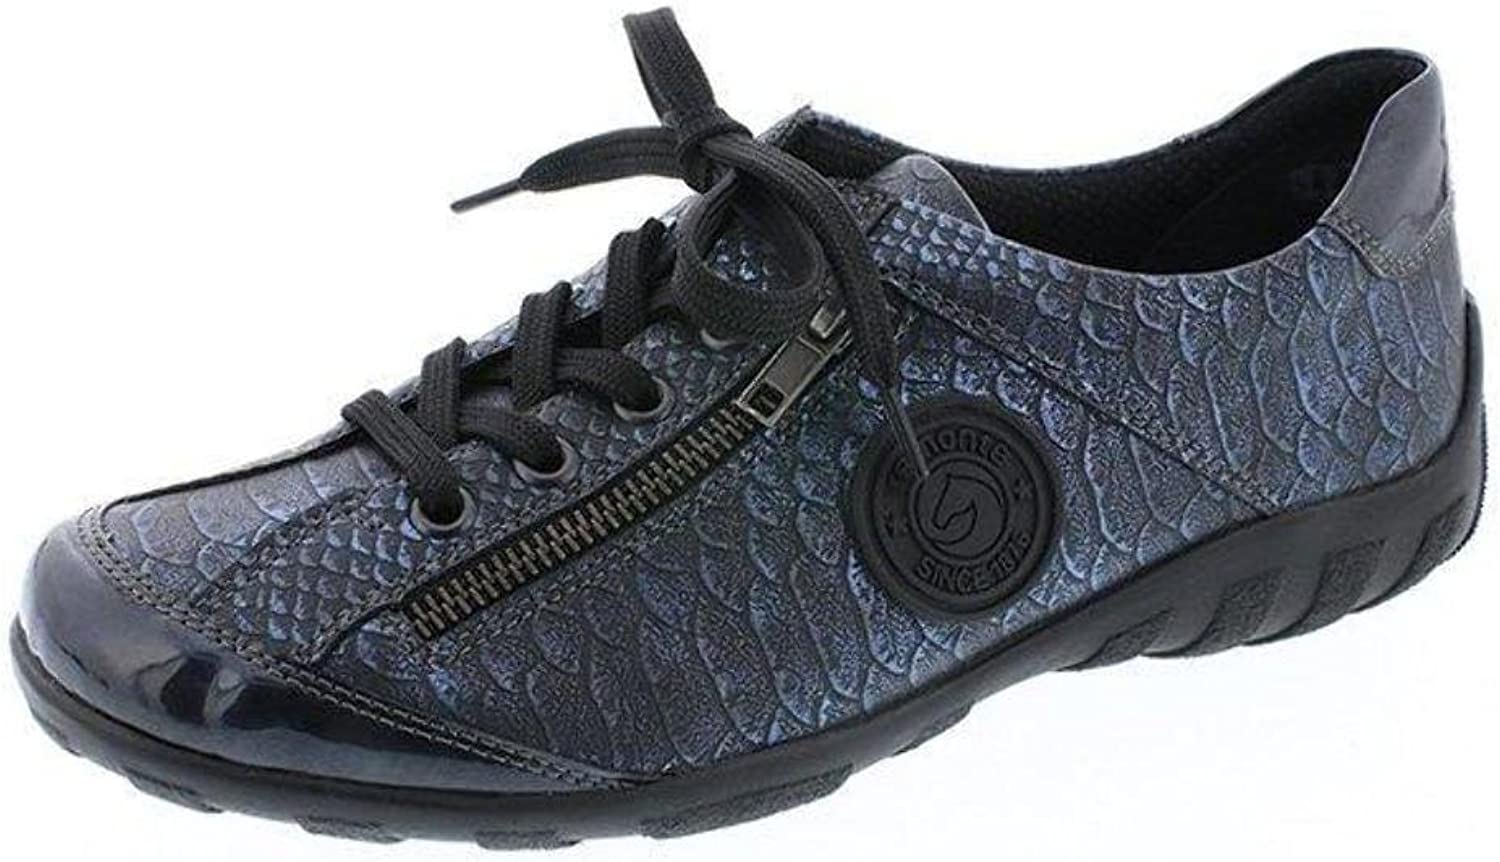 Remonte R3408-17 bluee Snake Print Leather Trainer shoes